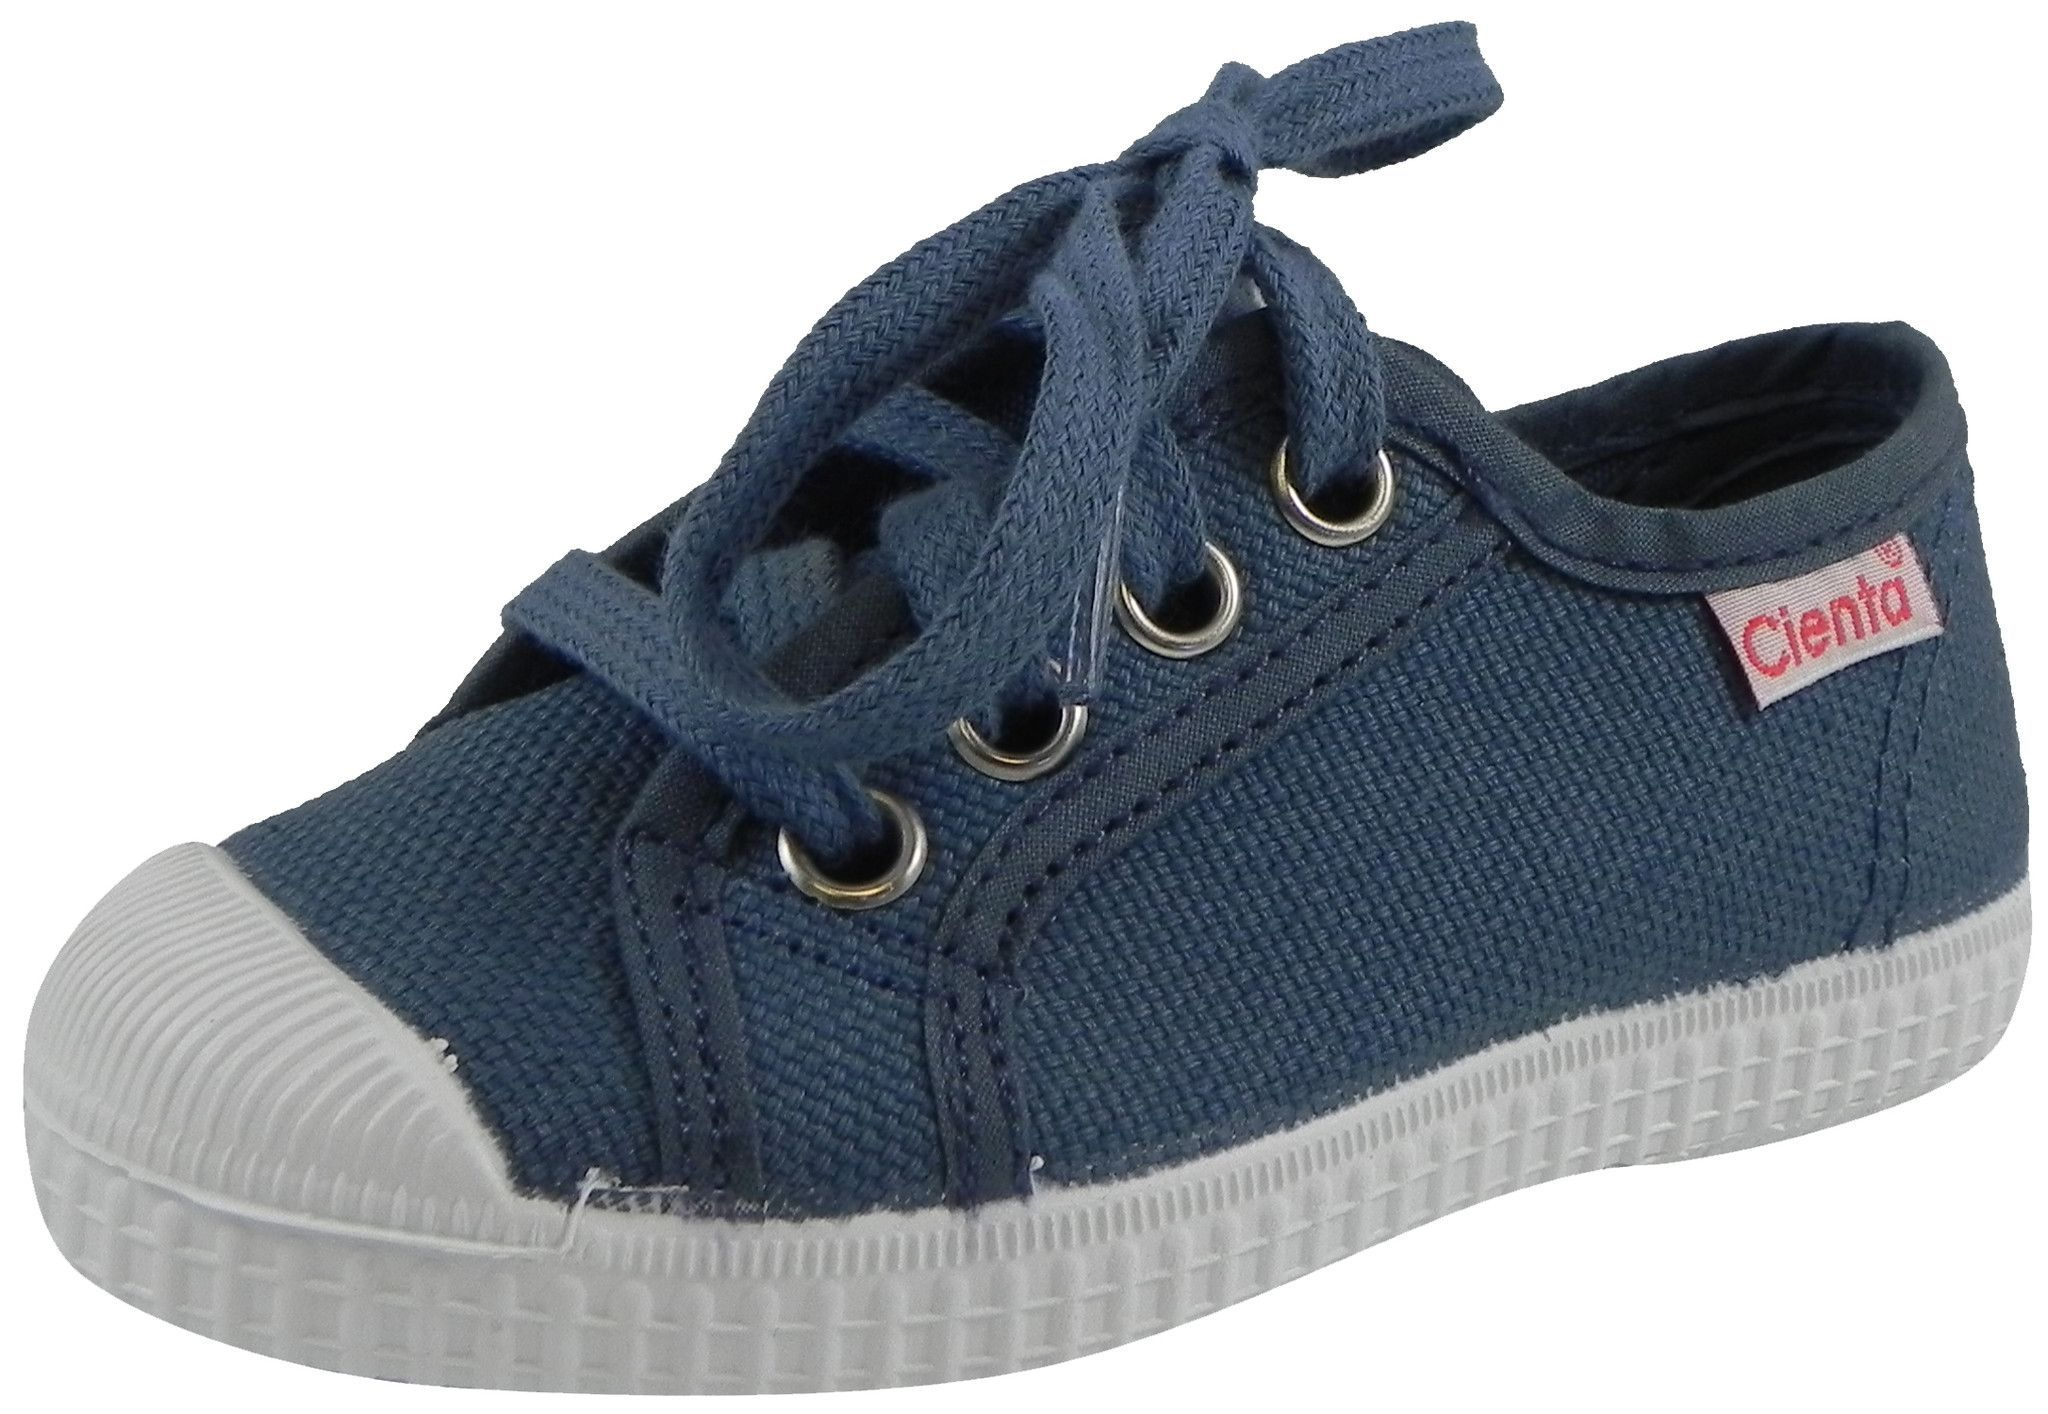 Cienta 74020 Boy's and Girl's Lavender Blue Lace Up Textured Canvas Sneakers